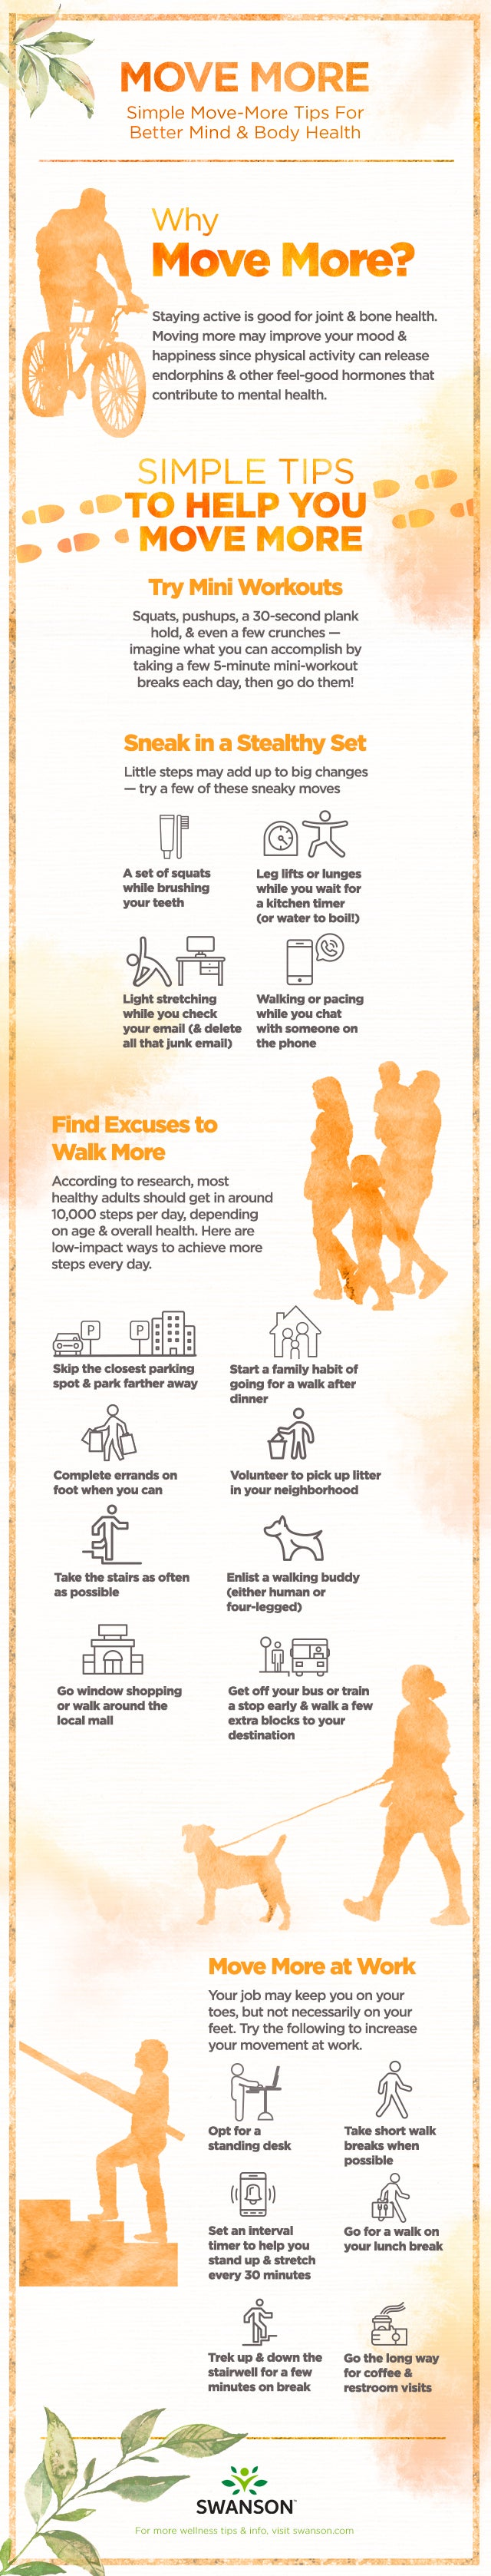 Simple tips to move more for better mind and body health - infographic by Swanson Health